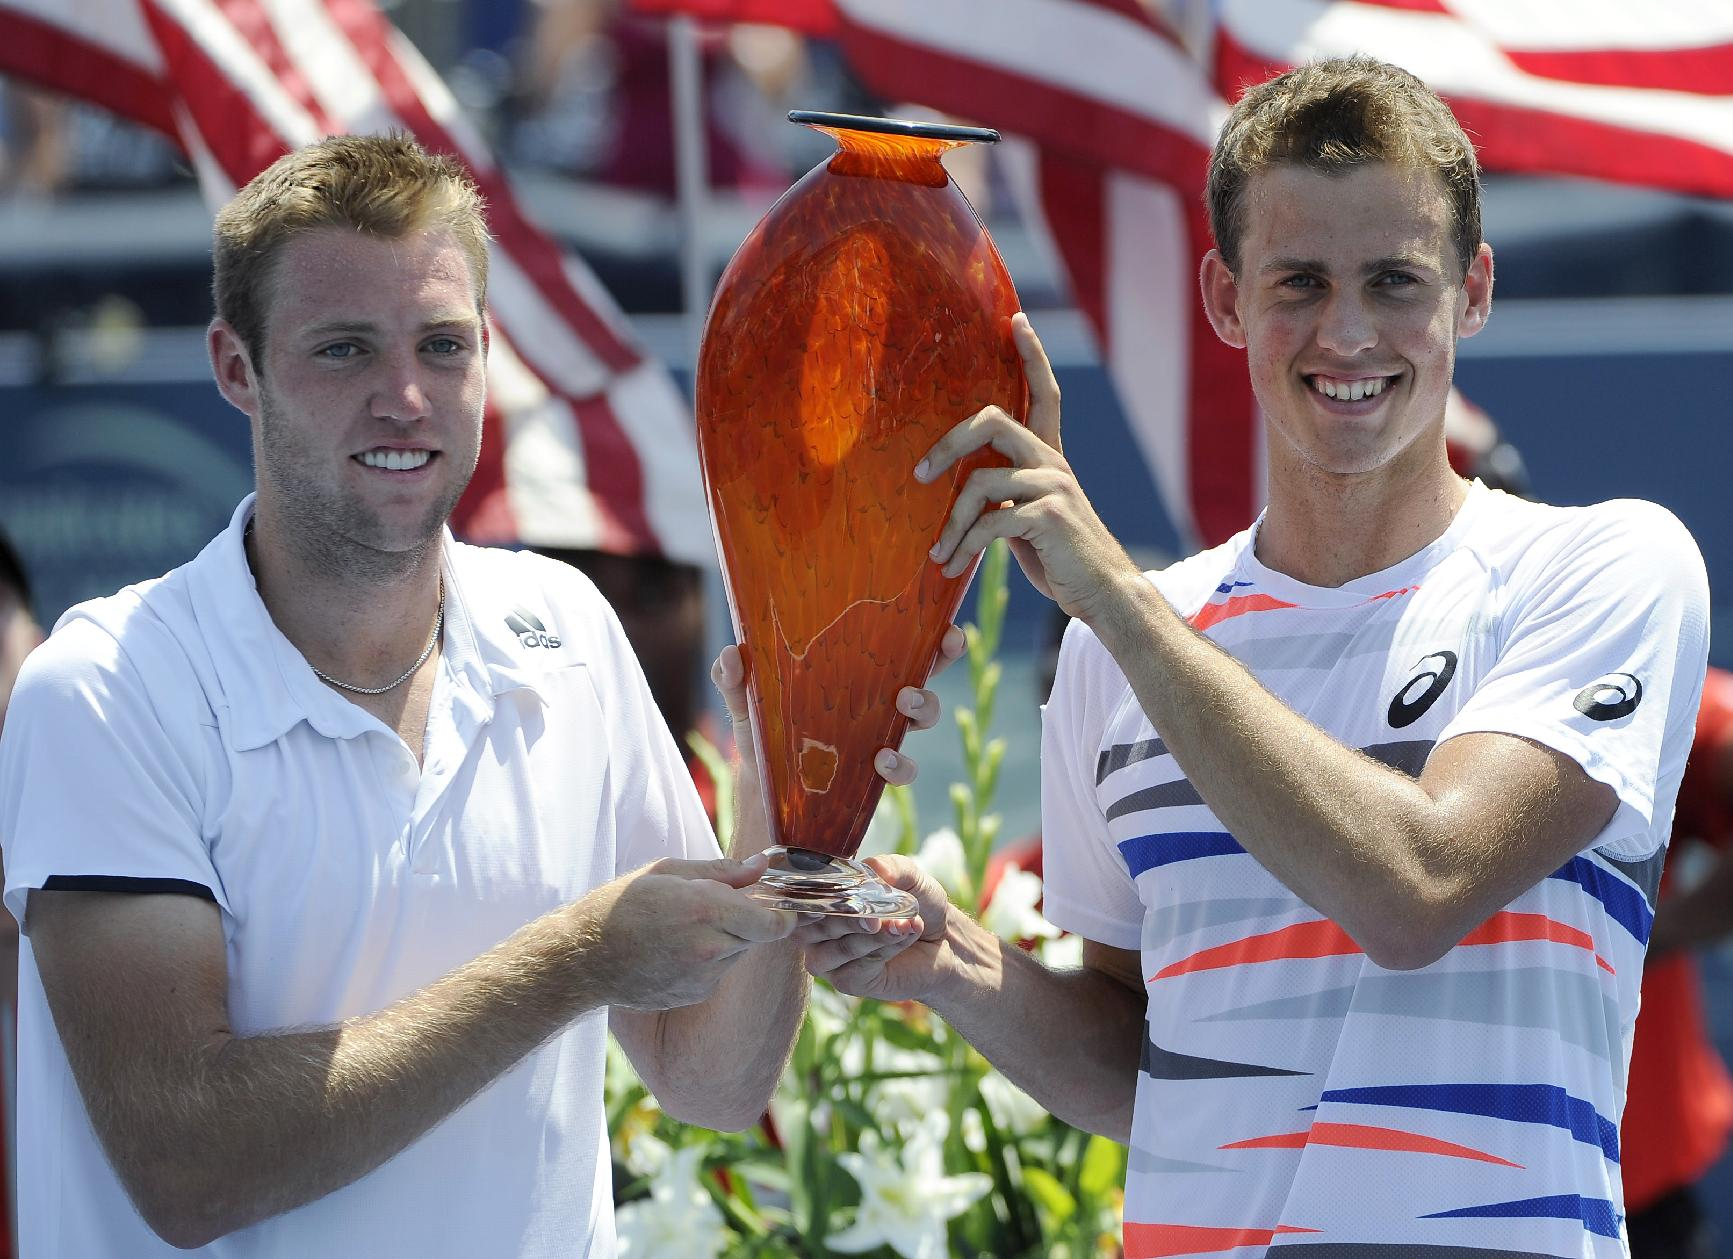 Jack Sock, left, holds the trophy with playing partner Vasek Pospisil after they defeated Steve Johnson and Sam Querry 6-3, 5-7, 10-5 to win the doubles final in the Atlanta Open tennis tournament Sunday, July 27, 2014, in Atlanta